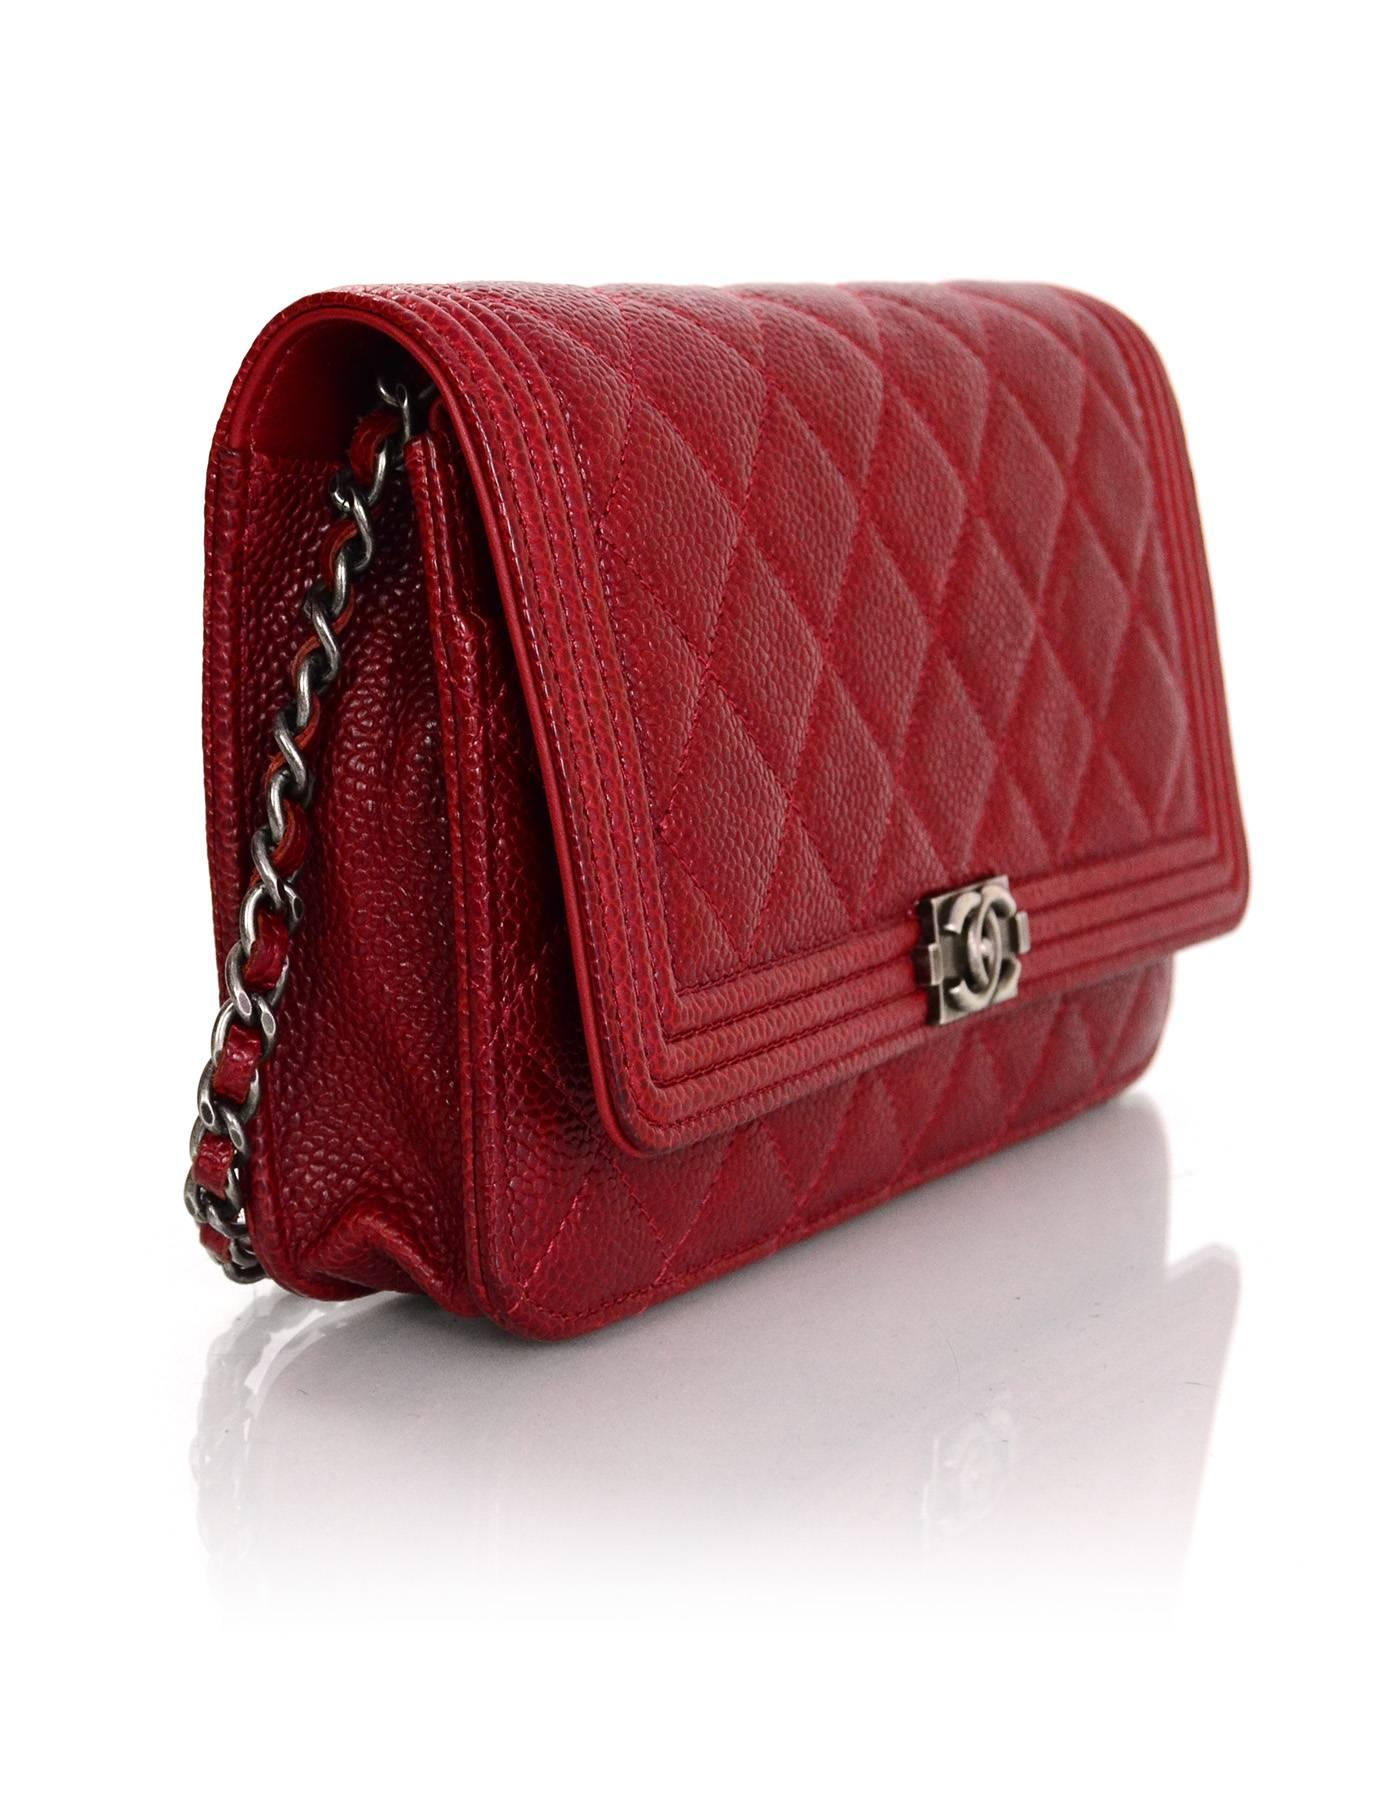 e84c892fd2fd Chanel Red Caviar Leather Quilted Boy WOC Wallet on a Chain Crossbody Bag  For Sale at 1stdibs